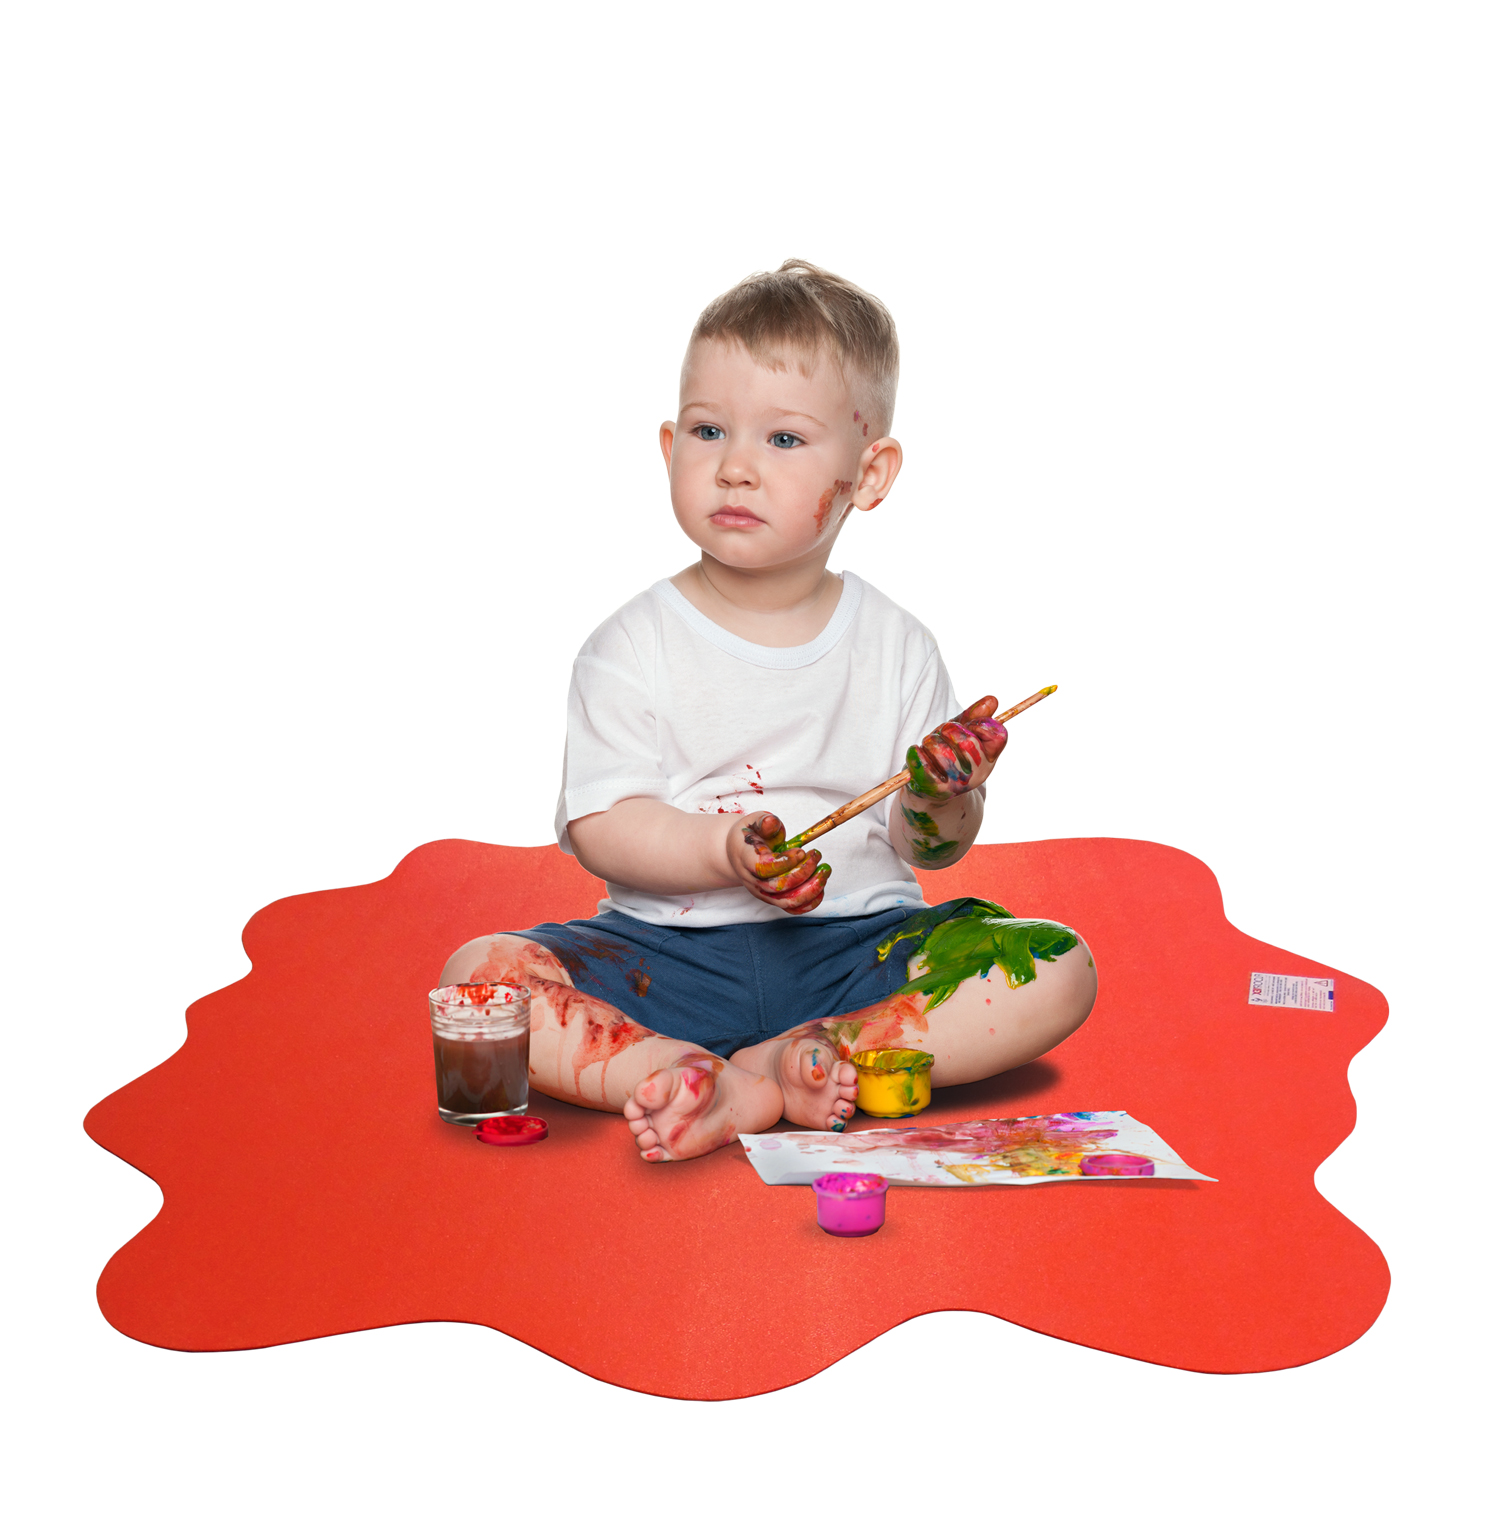 Floortex Multi Purpose High Chair Play Mat Smooth Back For Use On Hard Floors Volcanic Red 40 X Max